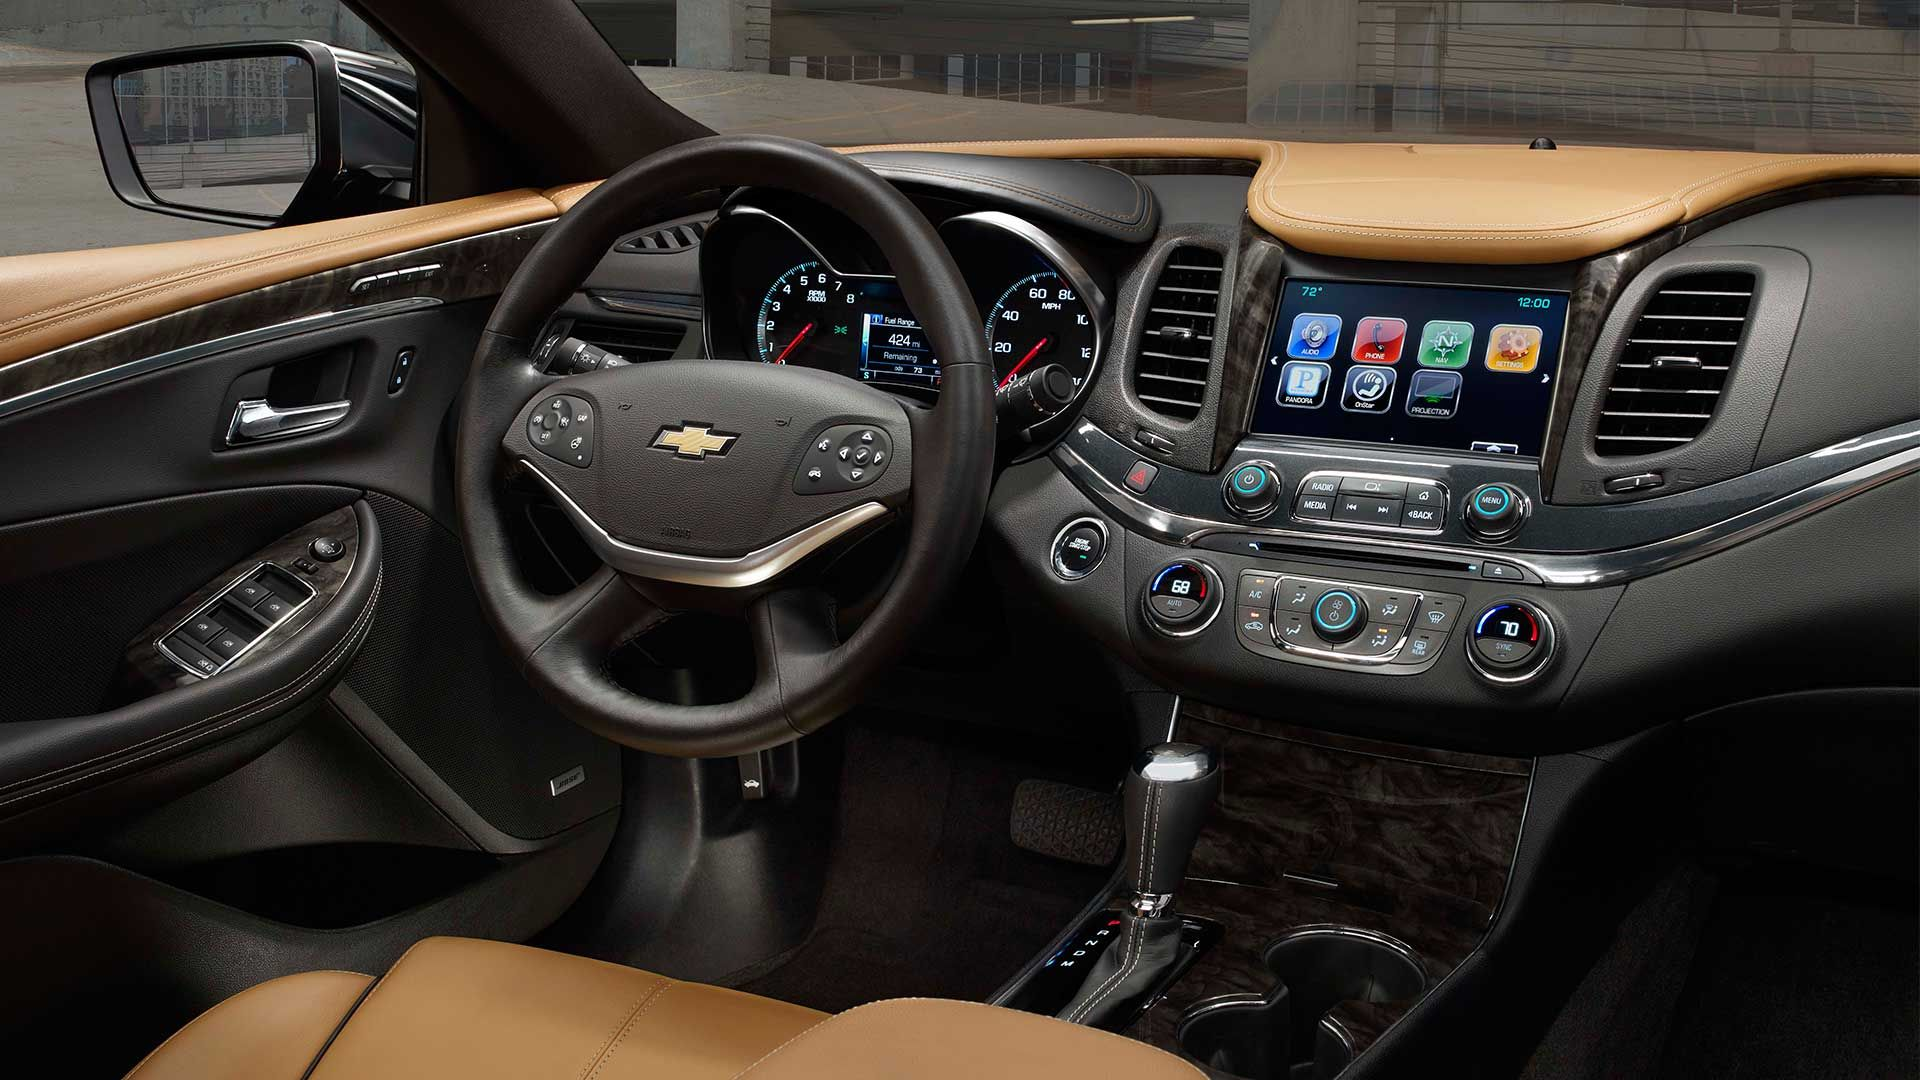 2015 chevrolet impala built precisely with the presents of the slimmer body